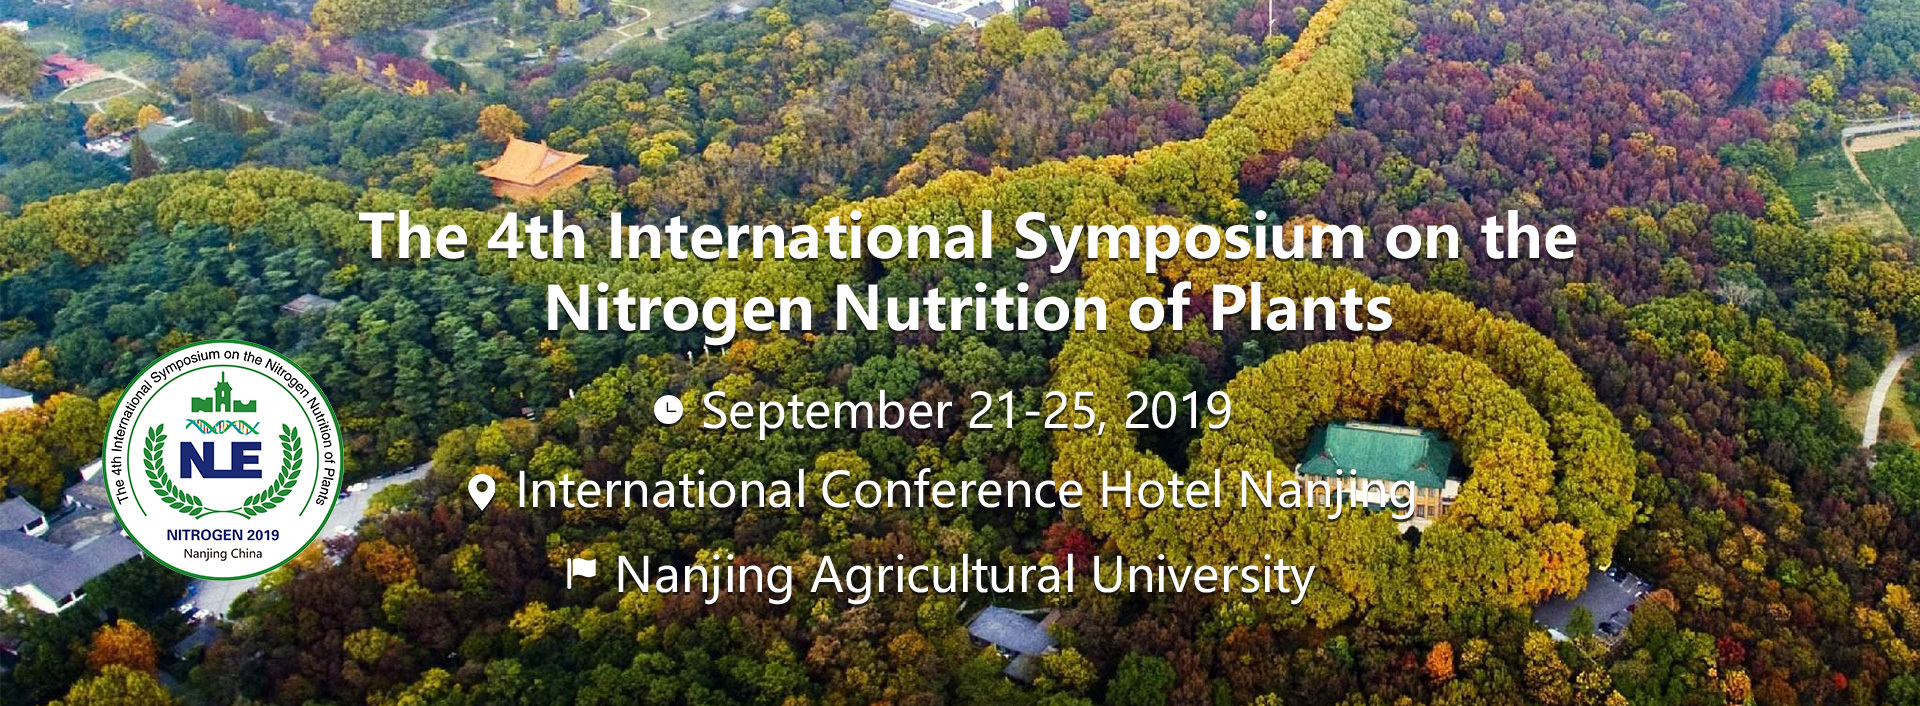 The 4th International Symposium on the Nitrogen Nutrition of Plants